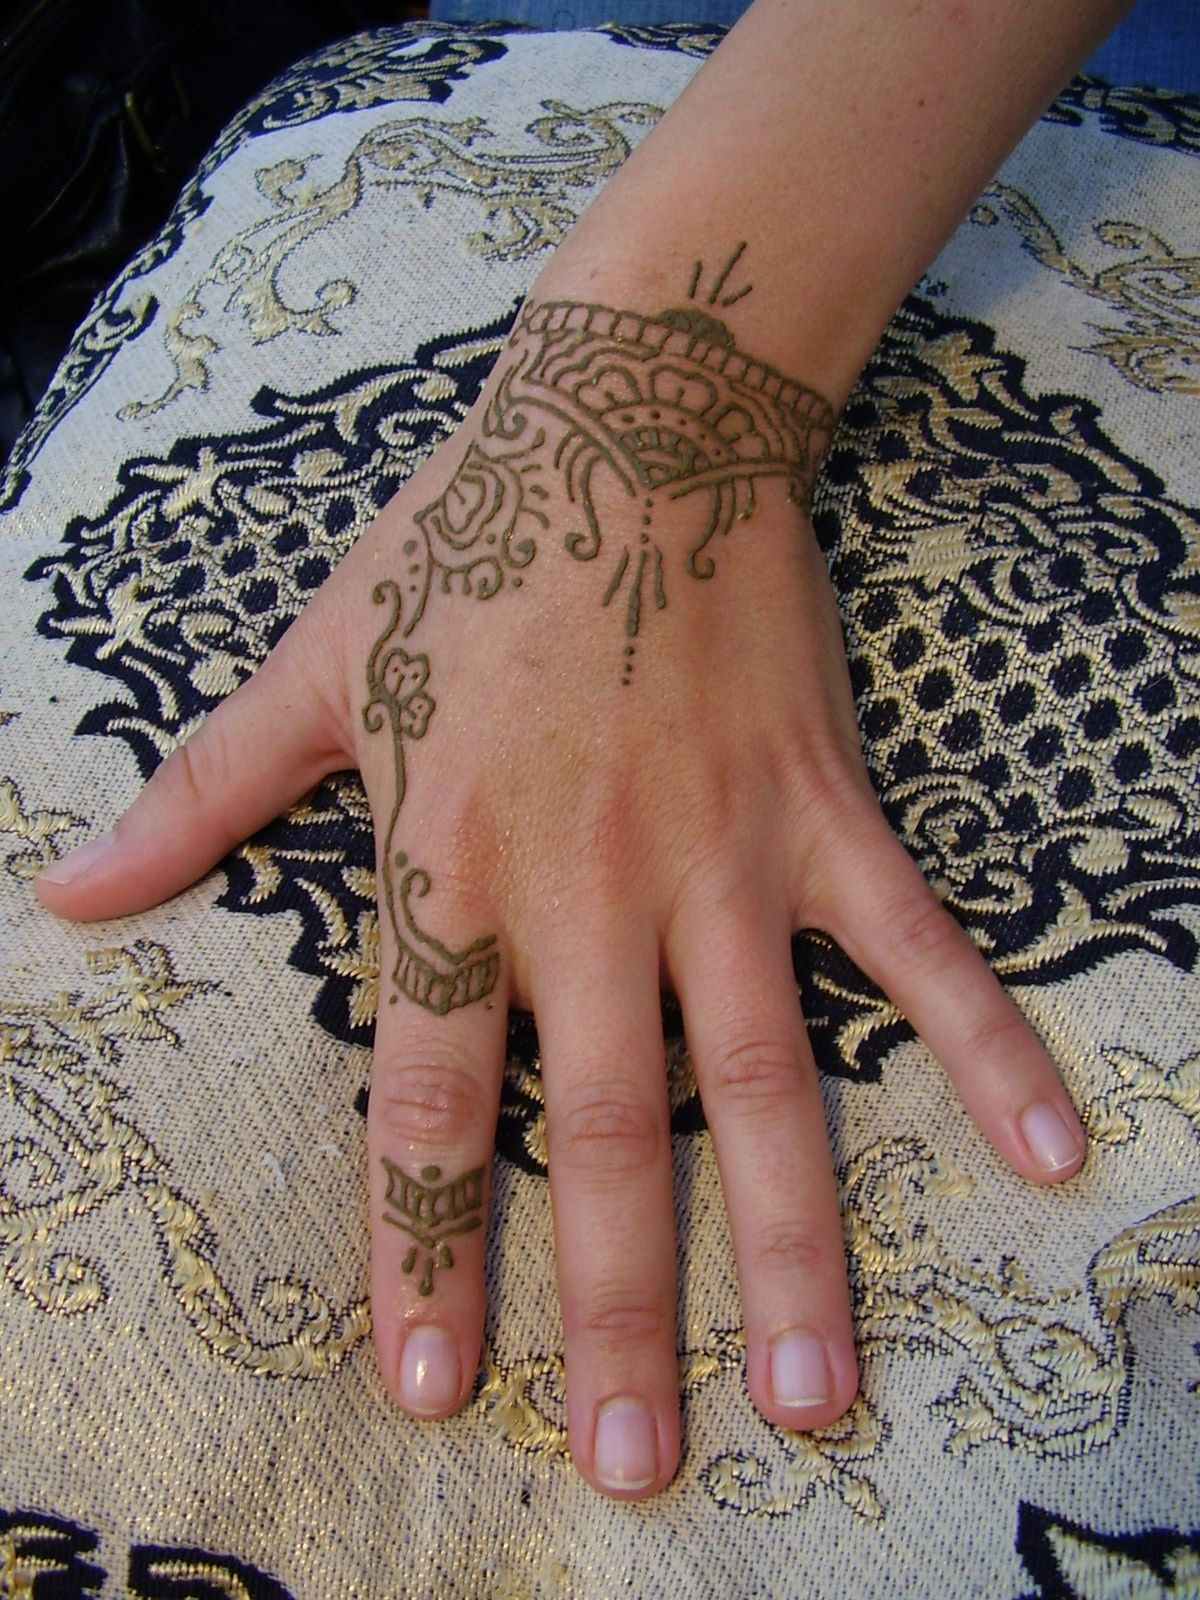 90 Stunning Henna Tattoo Designs to Feed Your Temporary Tattoo Fix together with  together with Ankle tattoo for Eid       henna hennatattoo tattoo cuff likewise Best 25  Henna ankle ideas on Pinterest   Ankle henna tattoo  Foot besides The 25  best Easy mehndi designs ideas on Pinterest   Simple henna also  additionally 43 Henna Wrist Tattoos Design likewise Henna  ❤   Mehndi Design   Pinterest   Hennas  Mehndi designs and in addition  as well henna tattoo   natural henna is orange brown NOT black  black as well Henna bracelet design by Ḵayāl henna studio  Instagram   Facebook. on henna tattoos for women celet